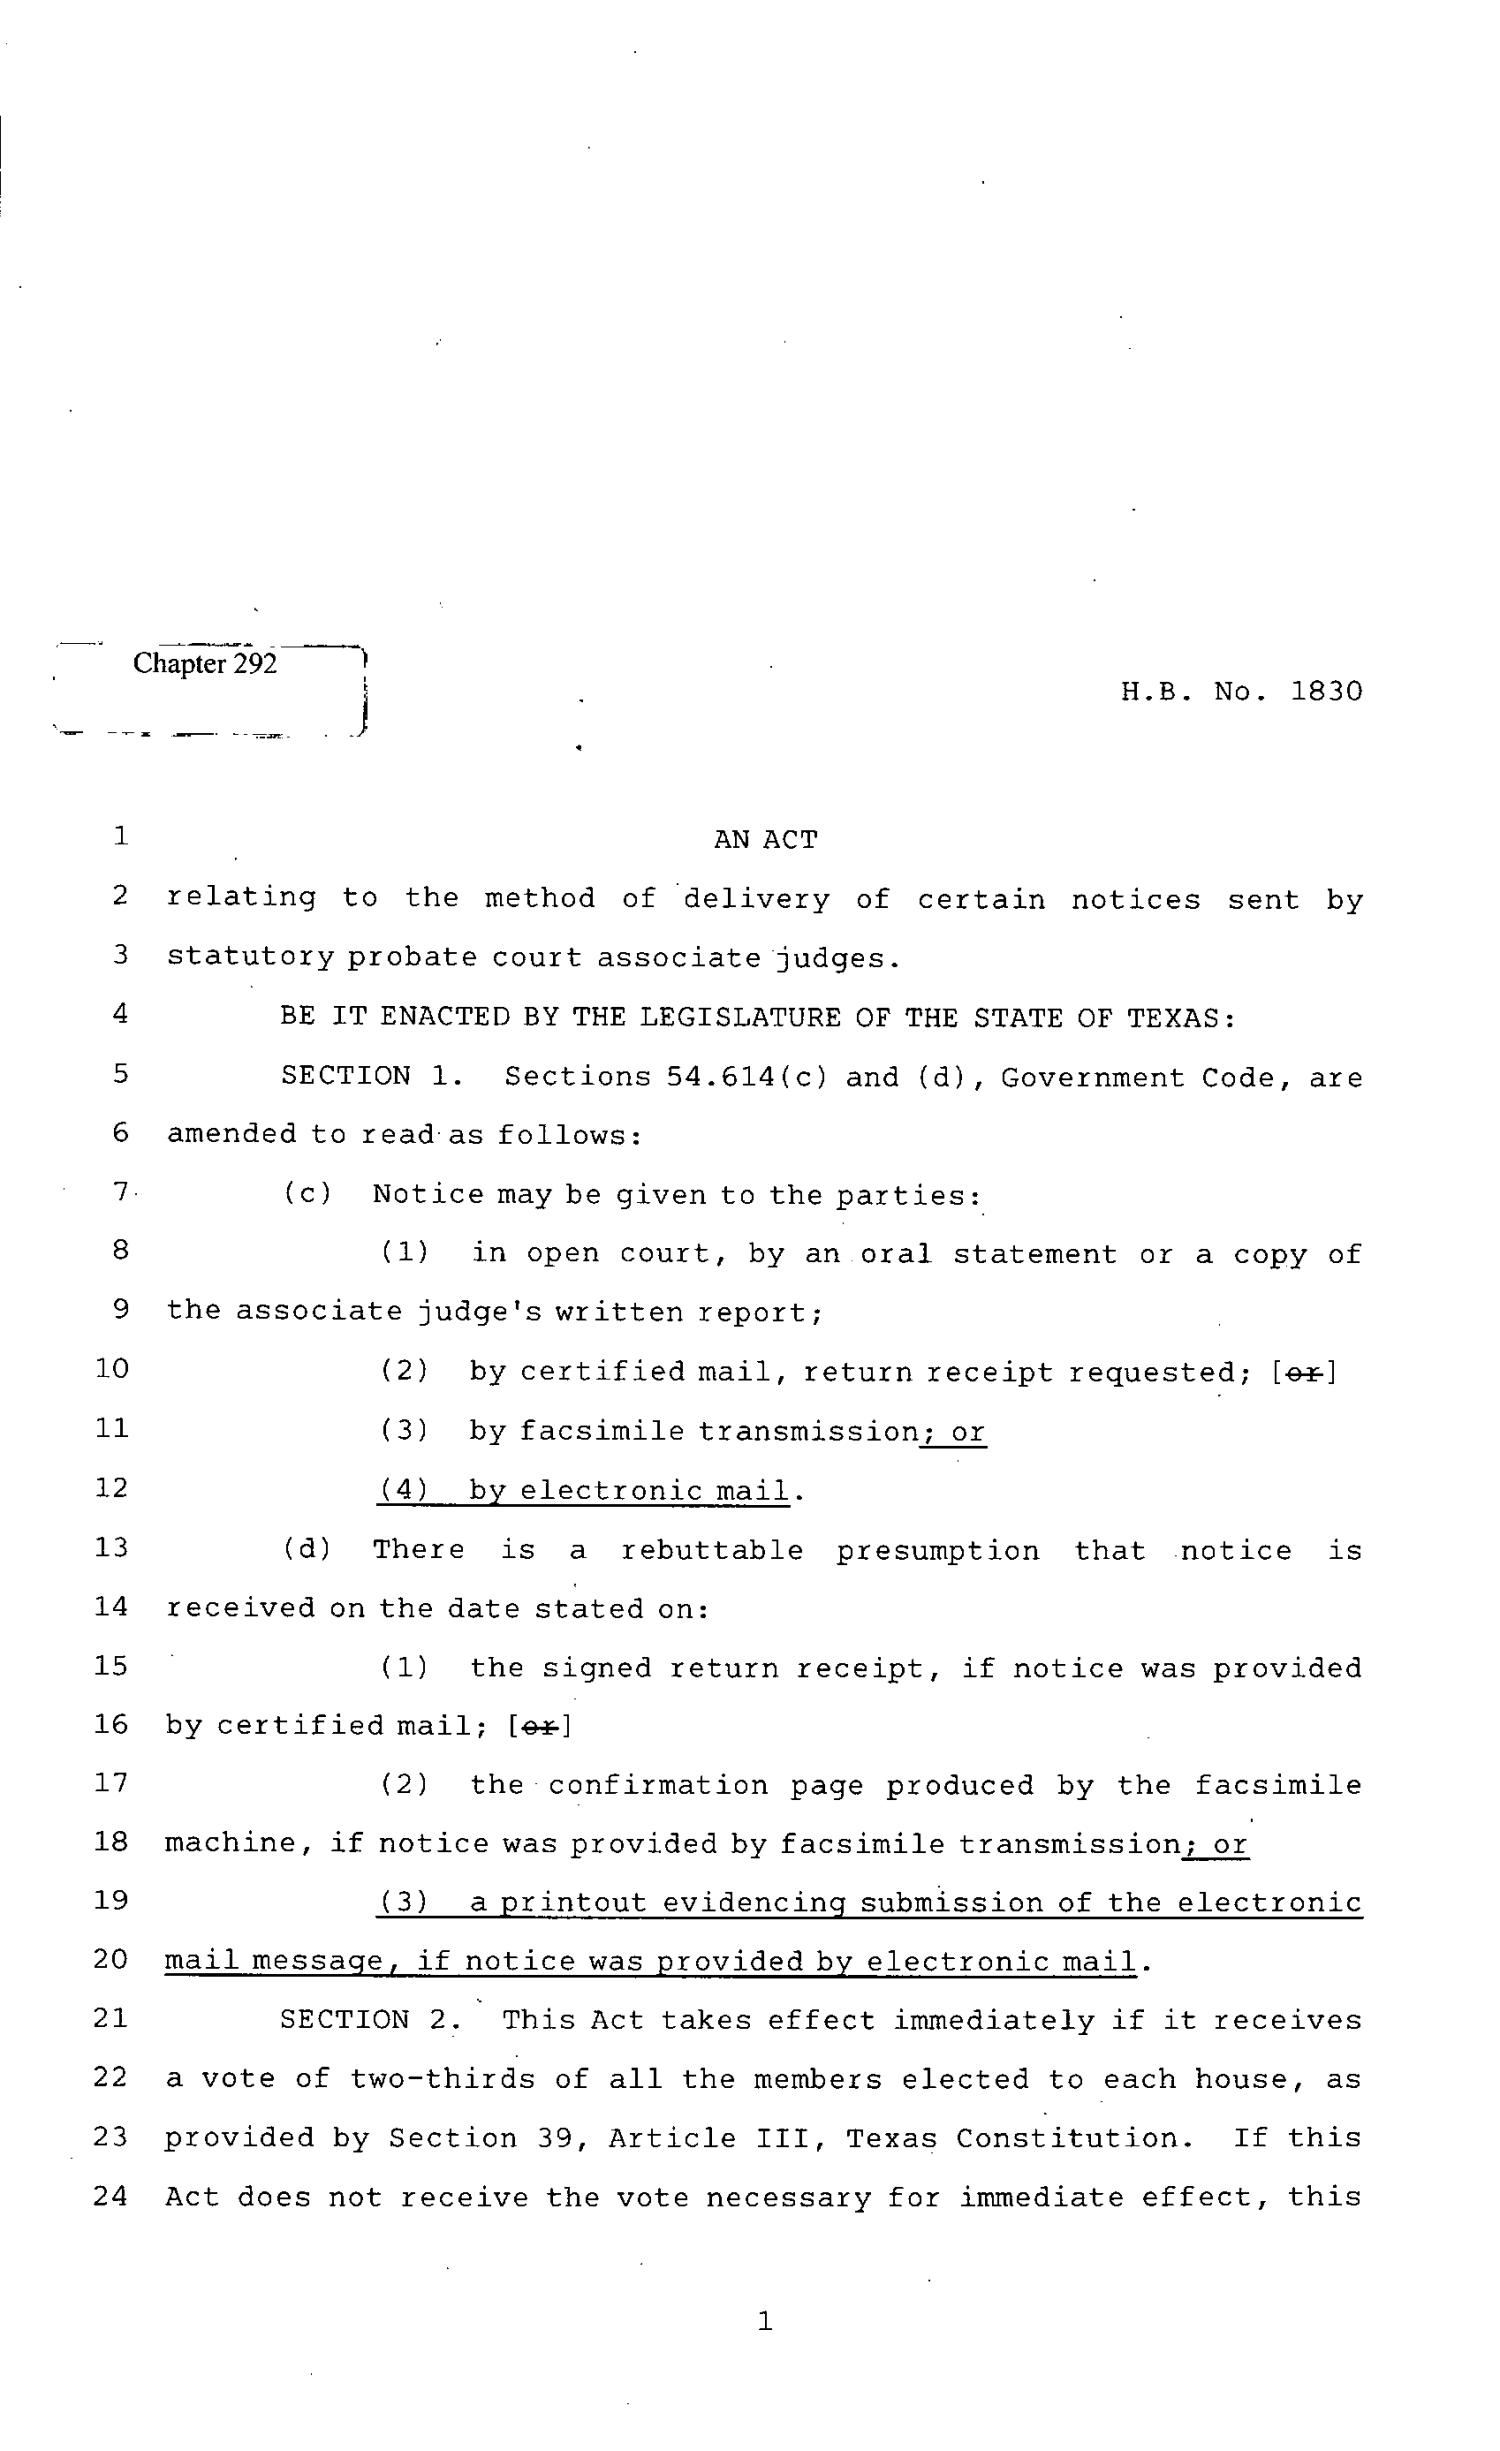 82nd Texas Legislature, Regular Session, House Bill 1830, Chapter 292                                                                                                      [Sequence #]: 1 of 3